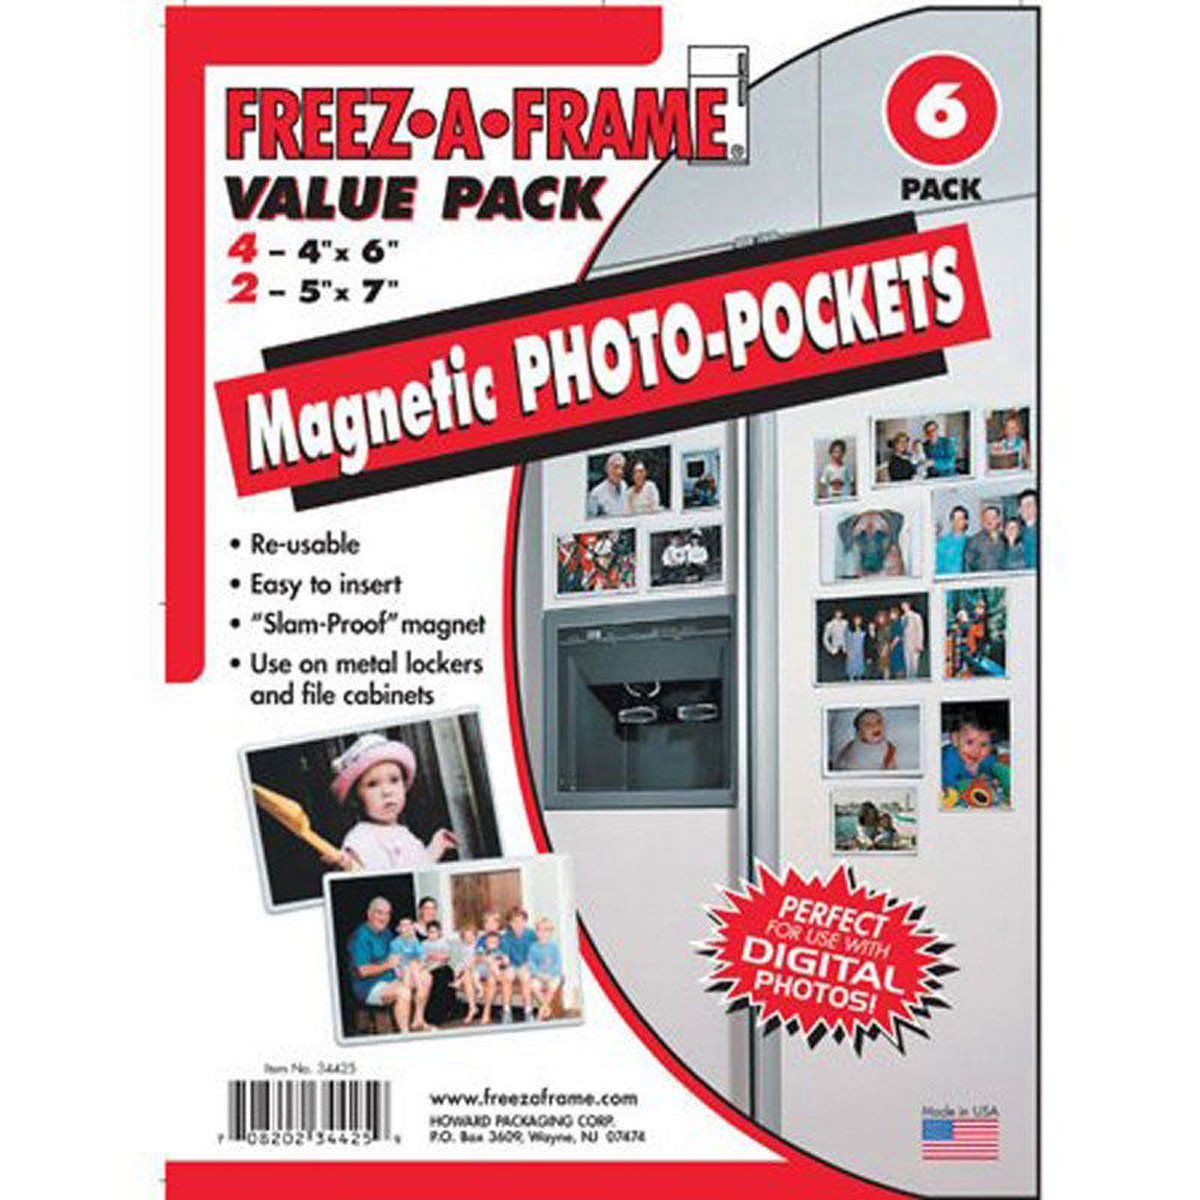 "Clear Magnetic Photo Frame Pockets, Freez-A-Frame for Refrigerator, 4 frames (4""x 6"") & 2 frames (5""x 7"")"